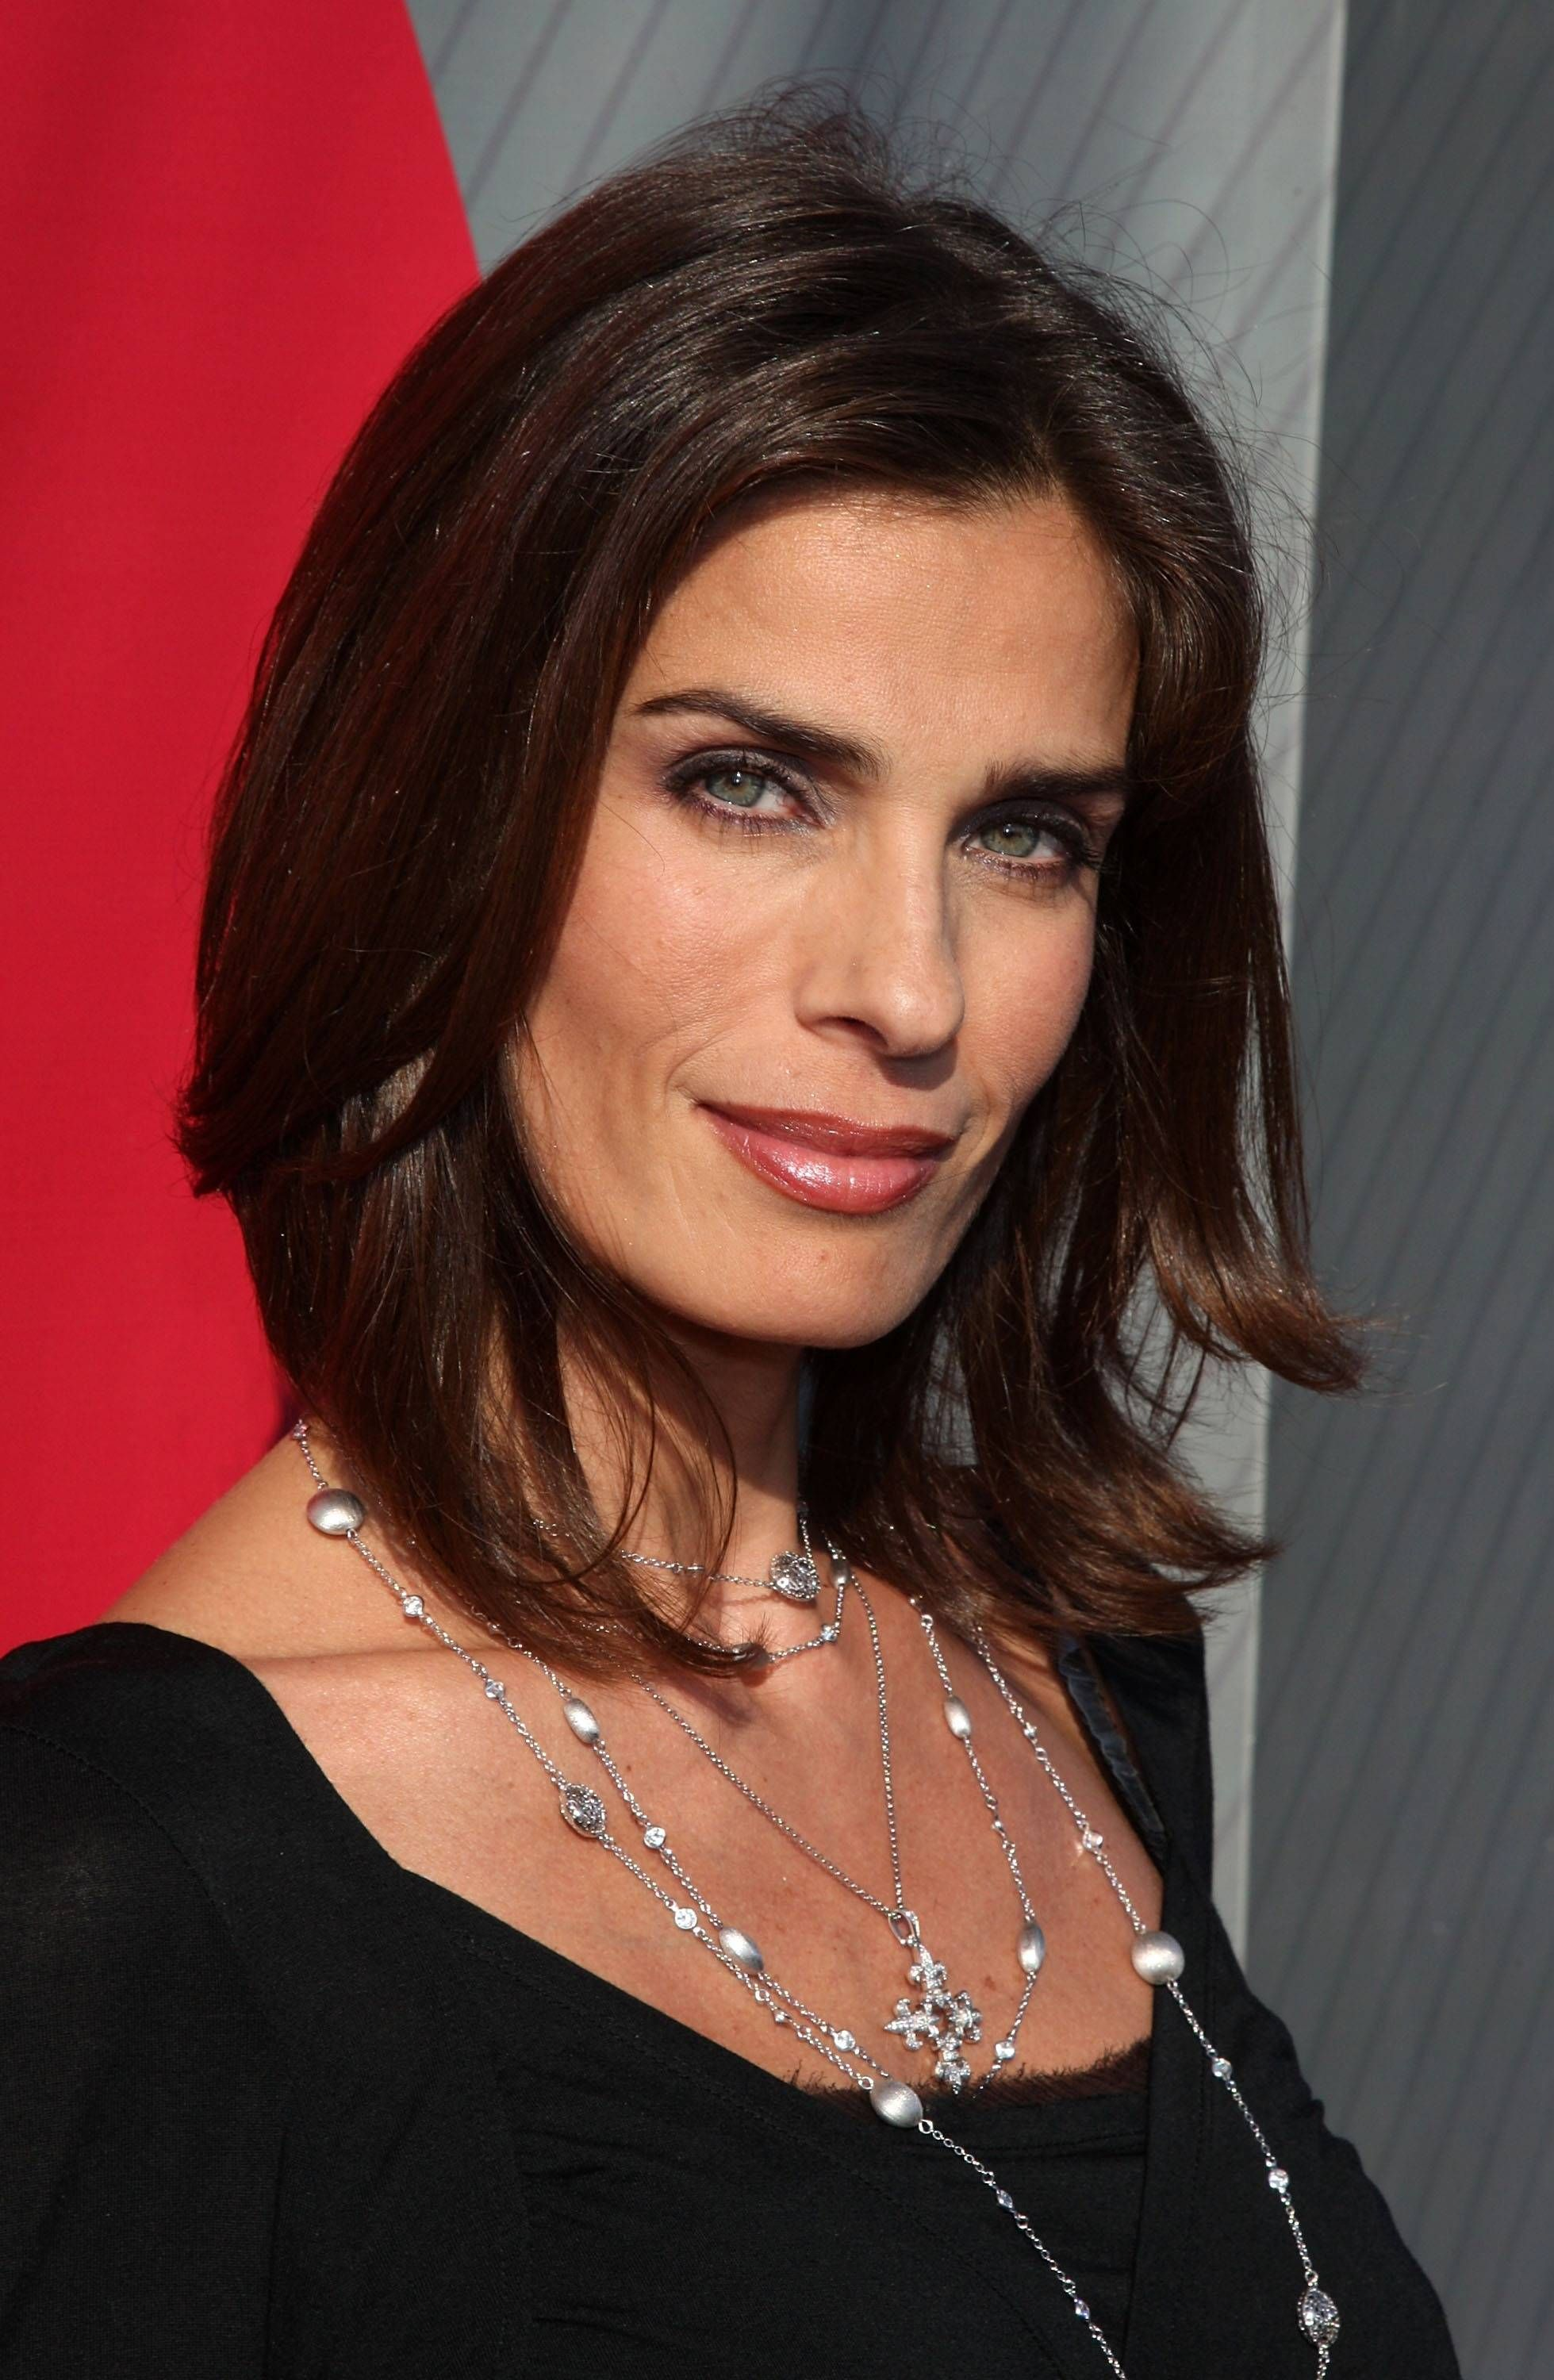 kristian alfonso net worthkristian alfonso 2016, kristian alfonso wiki, kristian alfonso, kristian alfonso bikini, kristian alfonso army of one, кристиан альфонсо, kristian alfonso jewelry, kristian alfonso net worth, kristian alfonso husband, kristian alfonso twitter, kristian alfonso instagram, kristian alfonso married, kristian alfonso 2015, kristian alfonso salary, kristian alfonso husband simon macauley, kristian alfonso plastic surgery, kristian alfonso sons, kristian alfonso hot